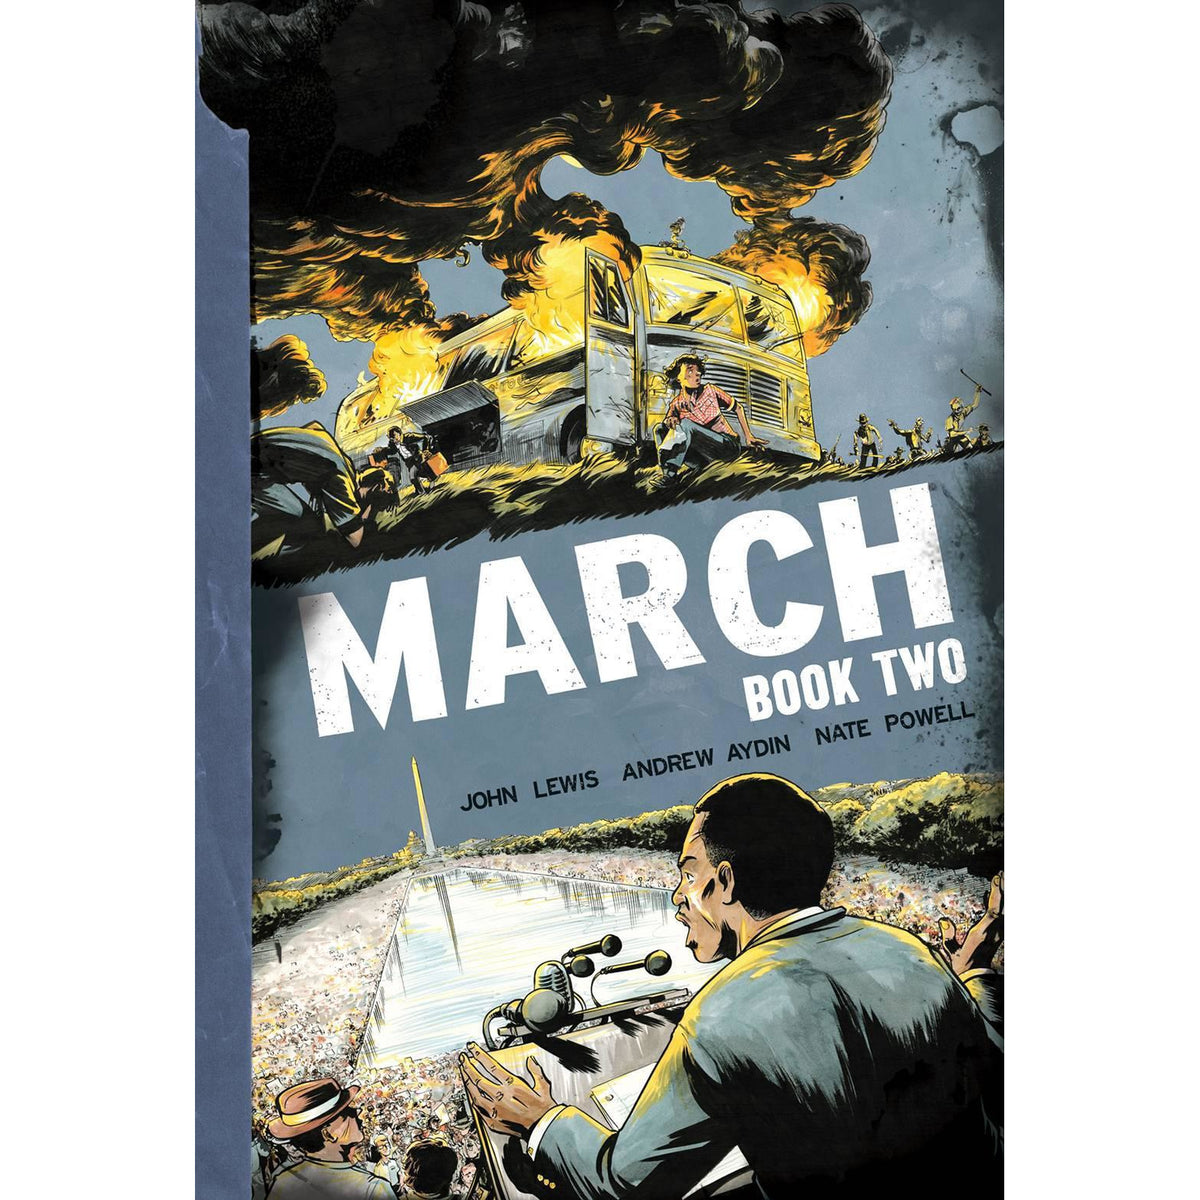 MARCH BOOK TWO: A GRAPHIC NOVEL BY JOHN LEWIS